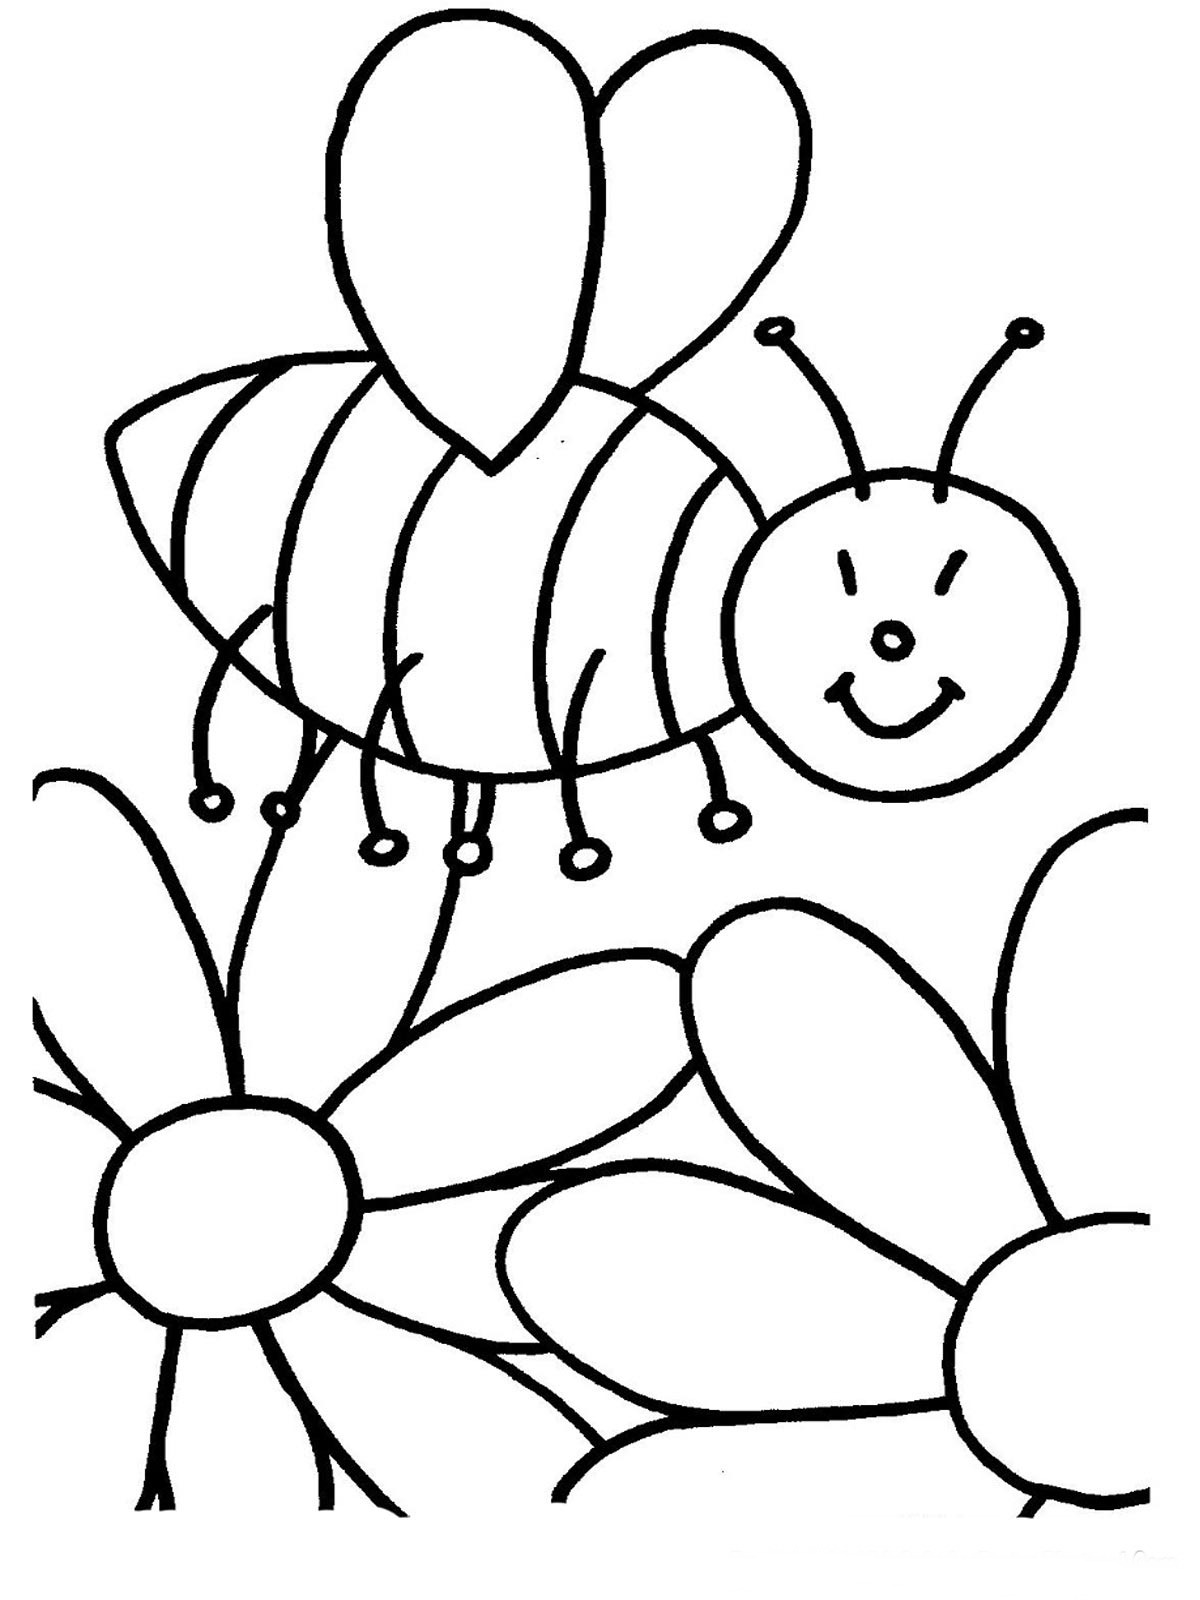 Bees Coloring Pages Realistic on 8 Spring Number Worksheets For Preschoolers